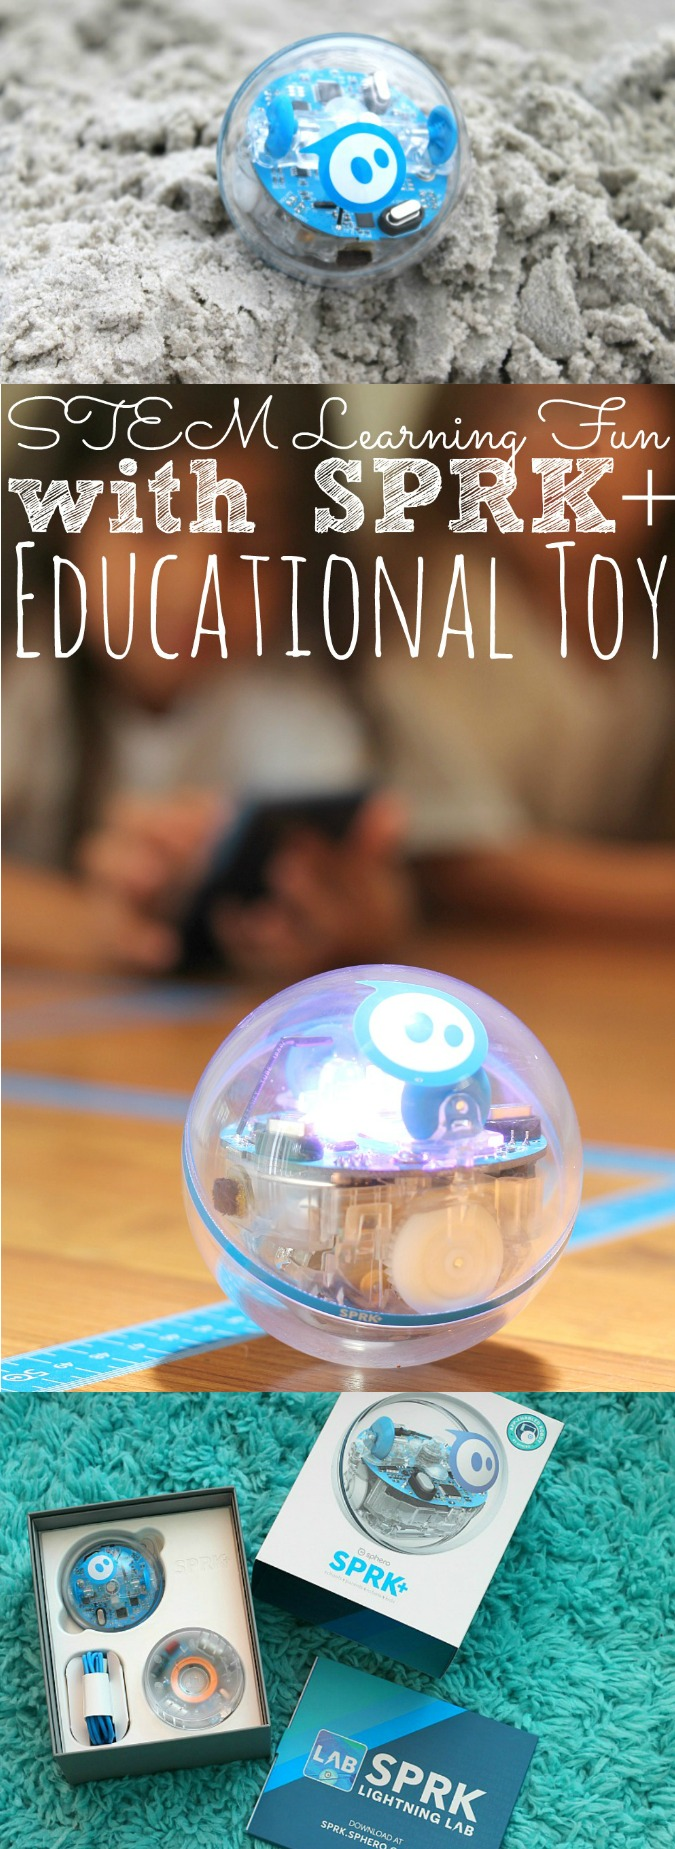 STEM Learning Fun With SPRK+ Educational Toy - simplytodaylife.com